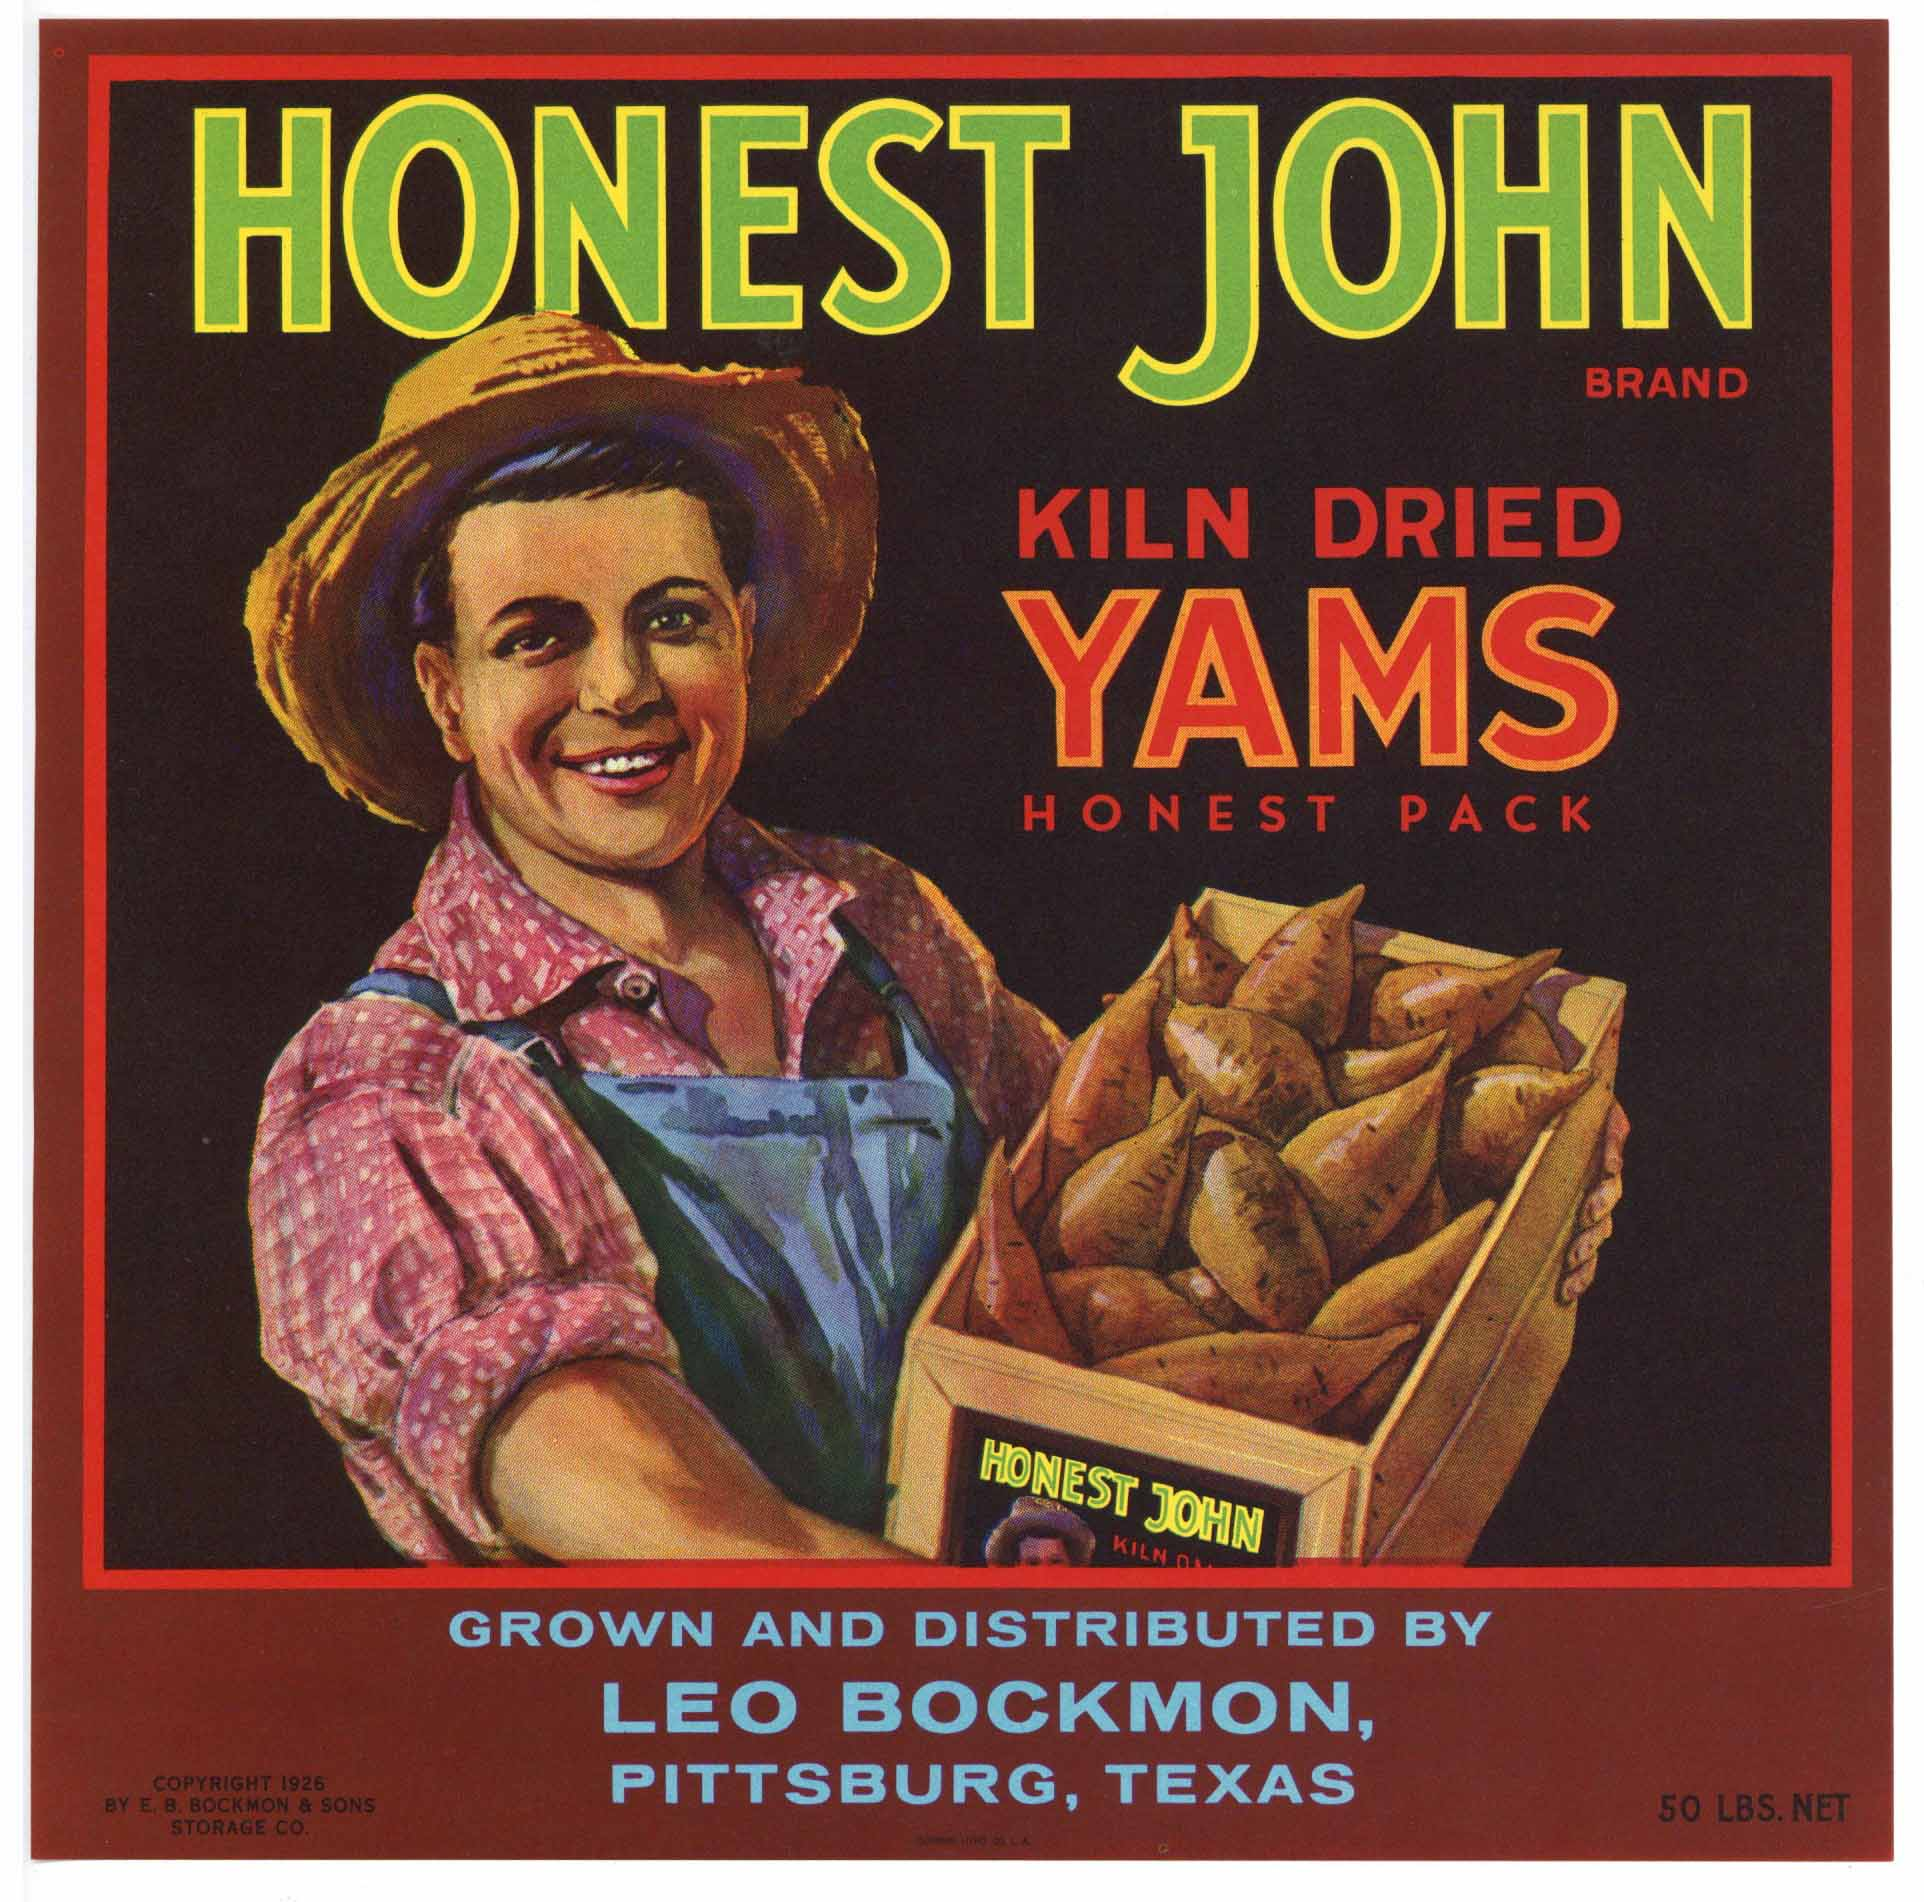 Honest John Brand Vintage Pittsburgh Texas Yam Crate Label